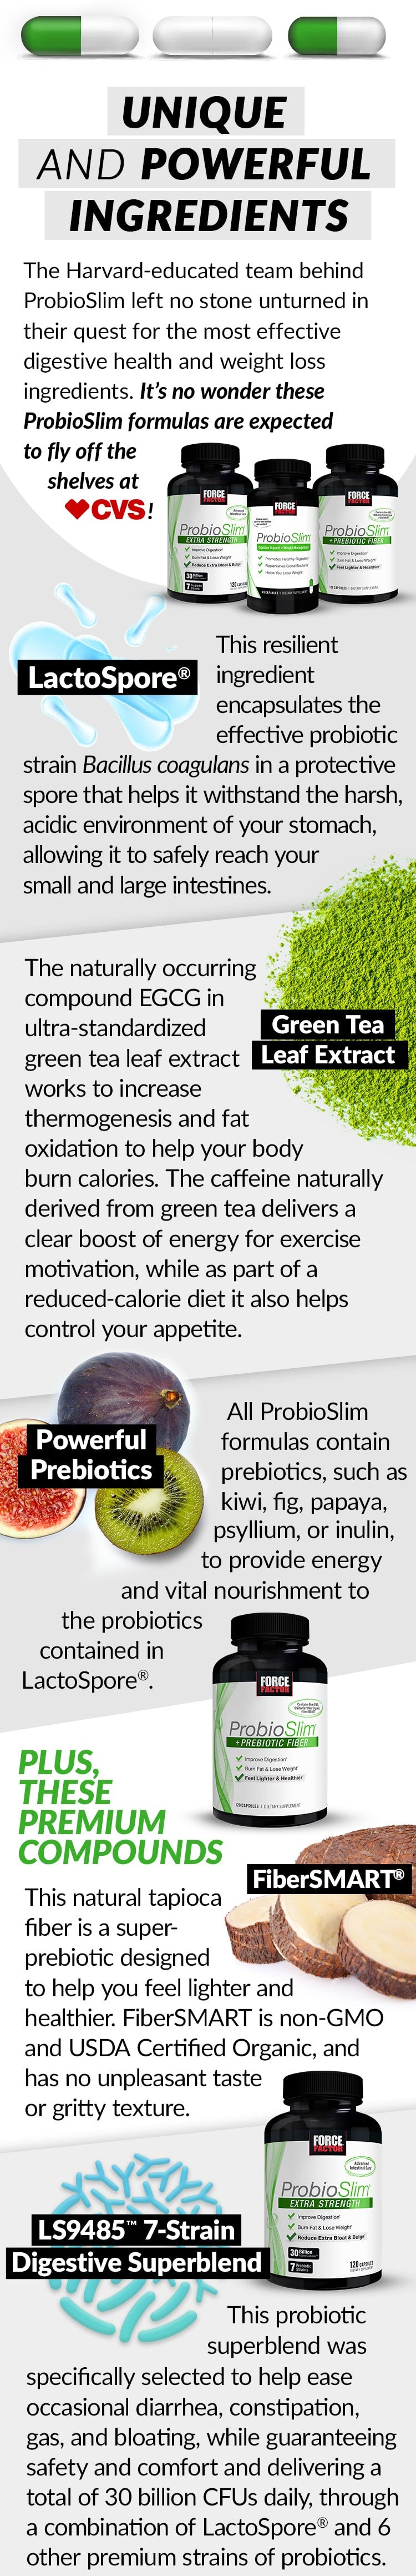 UNIQUE AND POWERFUL INGREDIENTS. The Harvard-educated team behind ProbioSlim left no stone unturned in their quest for the most effective digestive health and weight loss ingredients. It's no wonder these ProbioSlim formulas are expected to fly off the shelves at CVS! Bottles for ProbioSlim, ProbioSlim + Prebiotic Fiber, and ProbioSlim Extra Strength. LactoSpore® This resilient ingredient encapsulates the effective probiotic strain Bacillus coagulans in a protective spore that helps it withstand the harsh, acidic environment of your stomach, allowing it to safely reach your small and large intestines. Green Tea Leaf Extract. The naturally occurring compound EGCG in ultra-standardized green tealeaf extract works to increase thermogenesis and fat oxidation to help your body burn calories. The caffeine naturally derived from green tea delivers a clear boost of energy for exercise motivation, while as part of a reduced-calorie diet it also helps control your appetite. Powerful Prebiotics. All ProbioSlim formulas contain prebiotics, such as kiwi, fig, papaya, psyllium, or inulin, to provide energy and vital nourishment to the probiotics contained in LactoSpore®. PLUS, THESE PREMIUM COMPOUNDS: FiberSMART® This natural tapioca fiber is a super-prebiotic designed to help you feel lighter and healthier. FiberSMART is non-GMO and USDA Certified Organic, and has no unpleasant taste or gritty texture. LS9485™ 7-Strain Digestive Superblend. This probiotic superblend was specifically selected to help ease occasional diarrhea, constipation, gas, and bloating, while guaranteeing safety and comfort and delivering a total of 30 billion CFUs daily, through a combination of LactoSpore® and 6 other premium strains of probiotics.